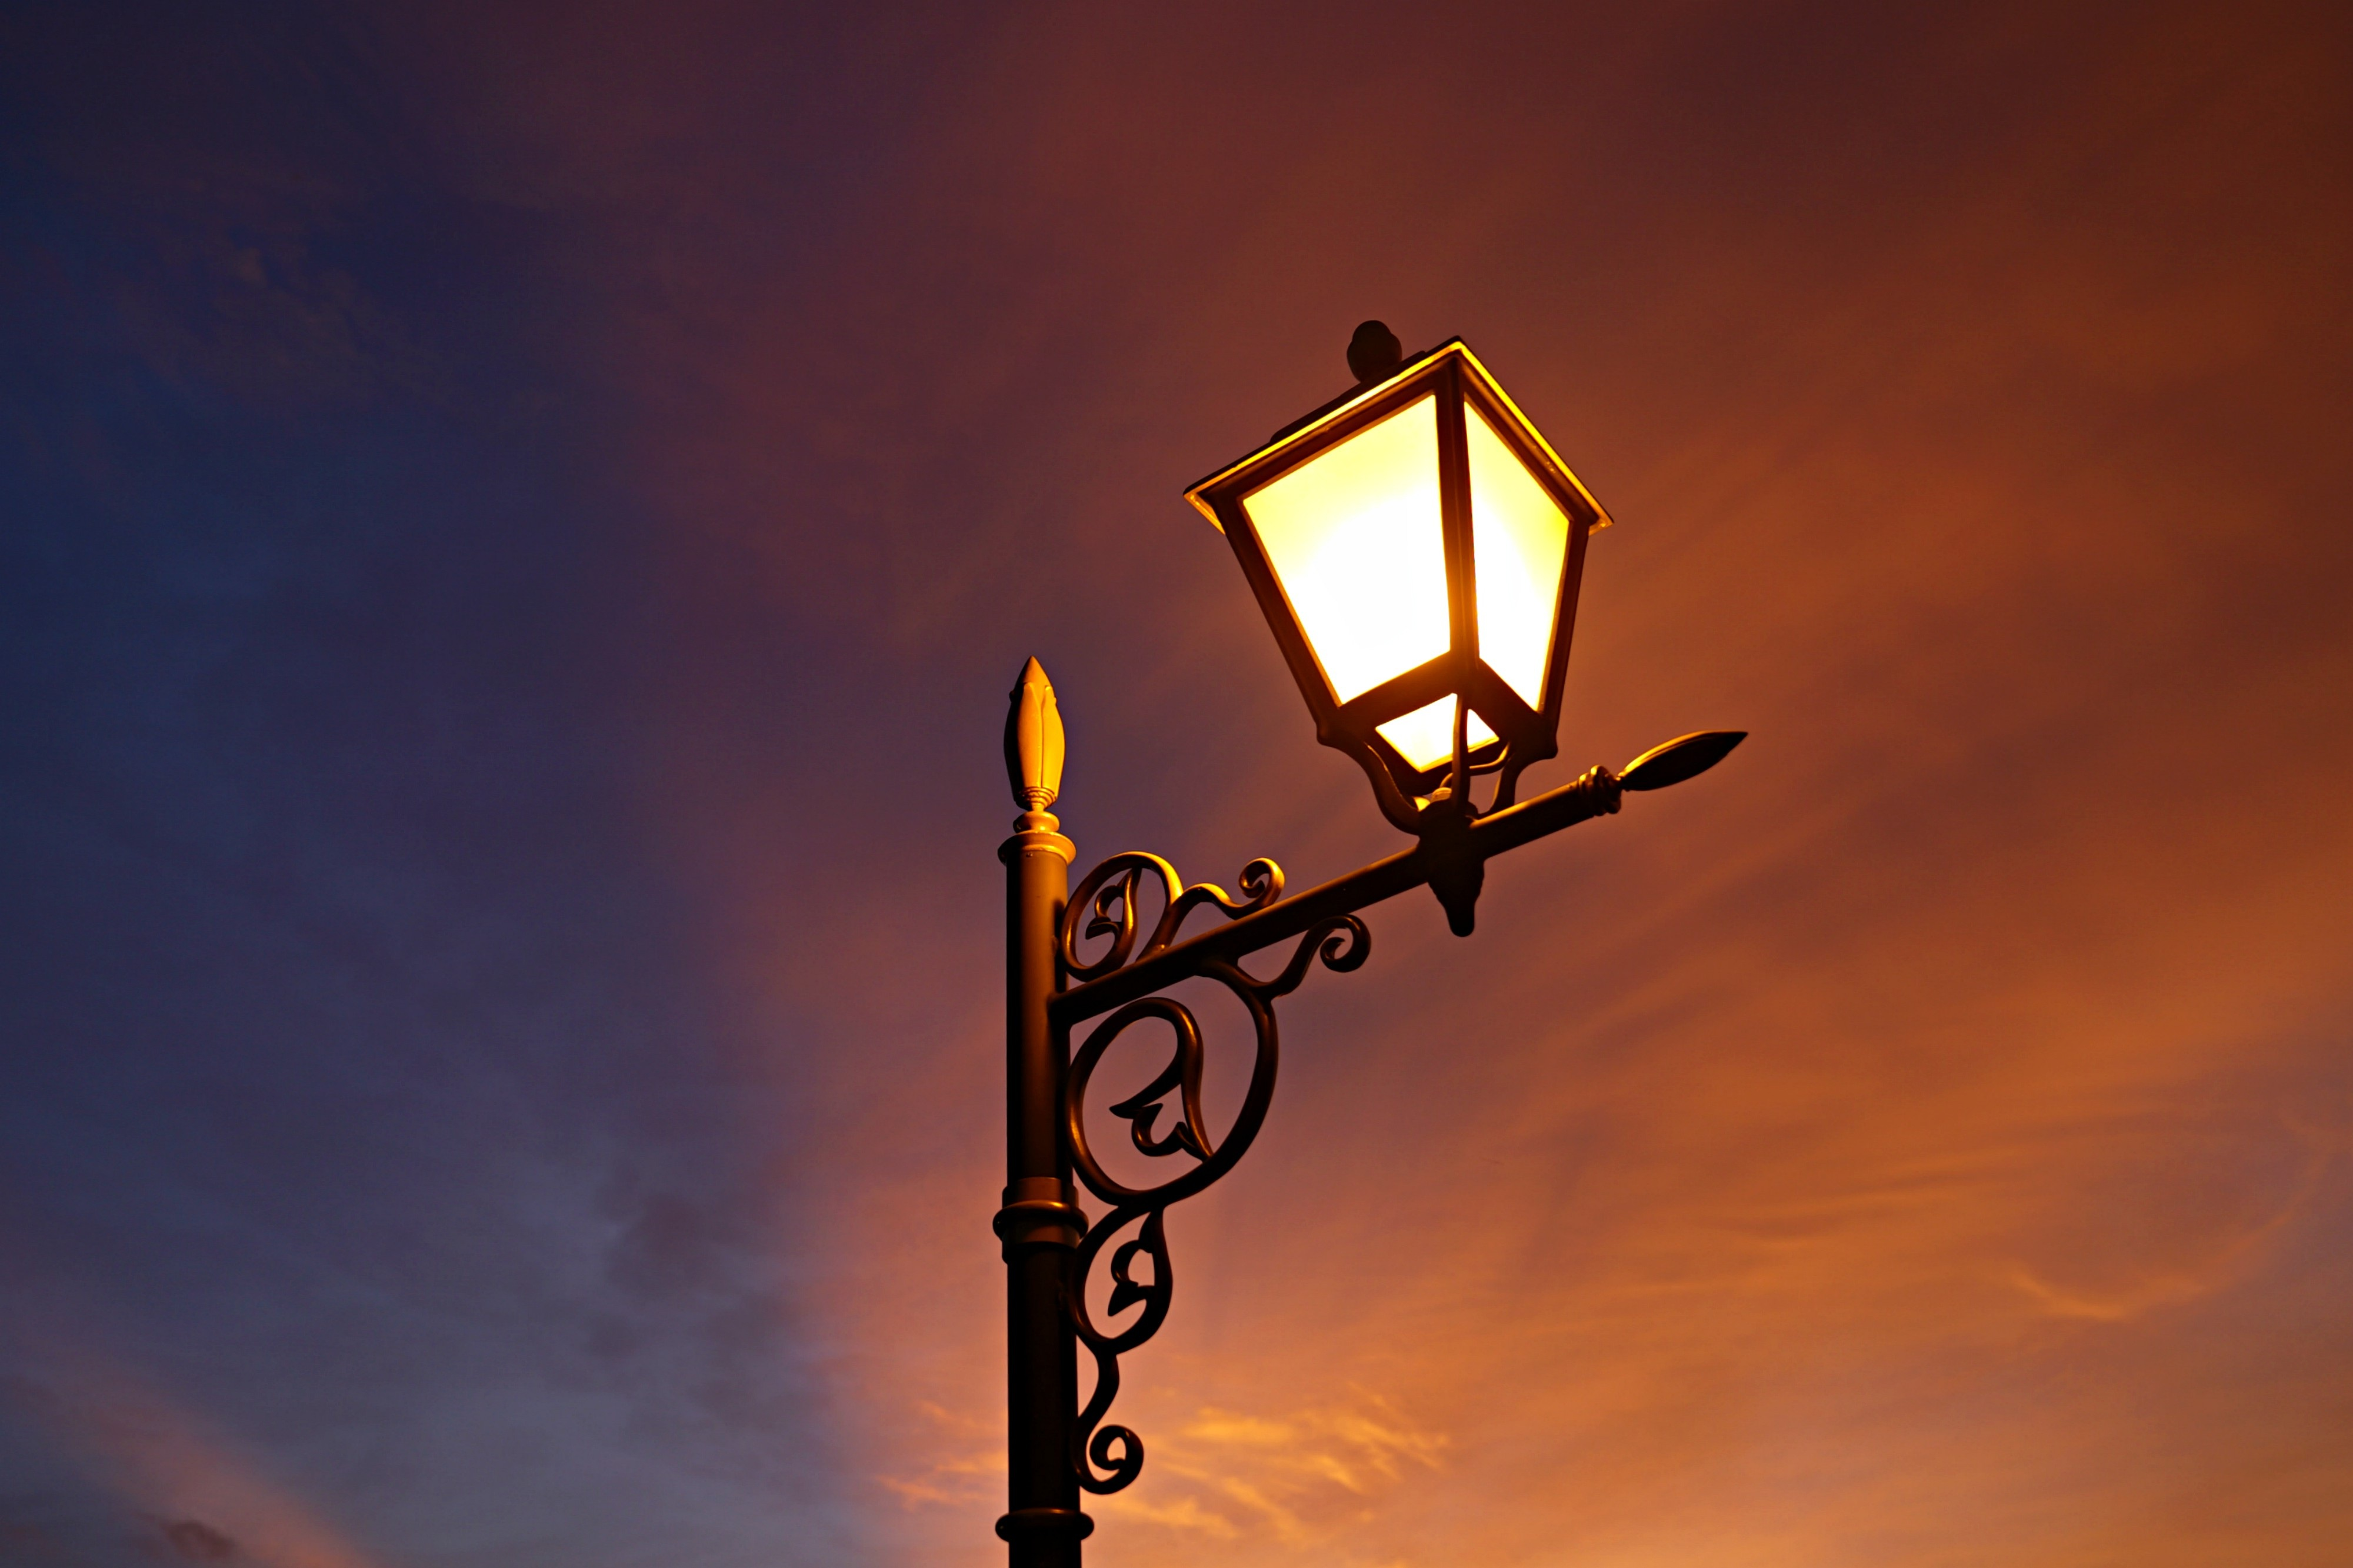 Lamp light 4k hd photography 4k wallpapers images backgrounds photos and pictures - Background images 4k hd ...